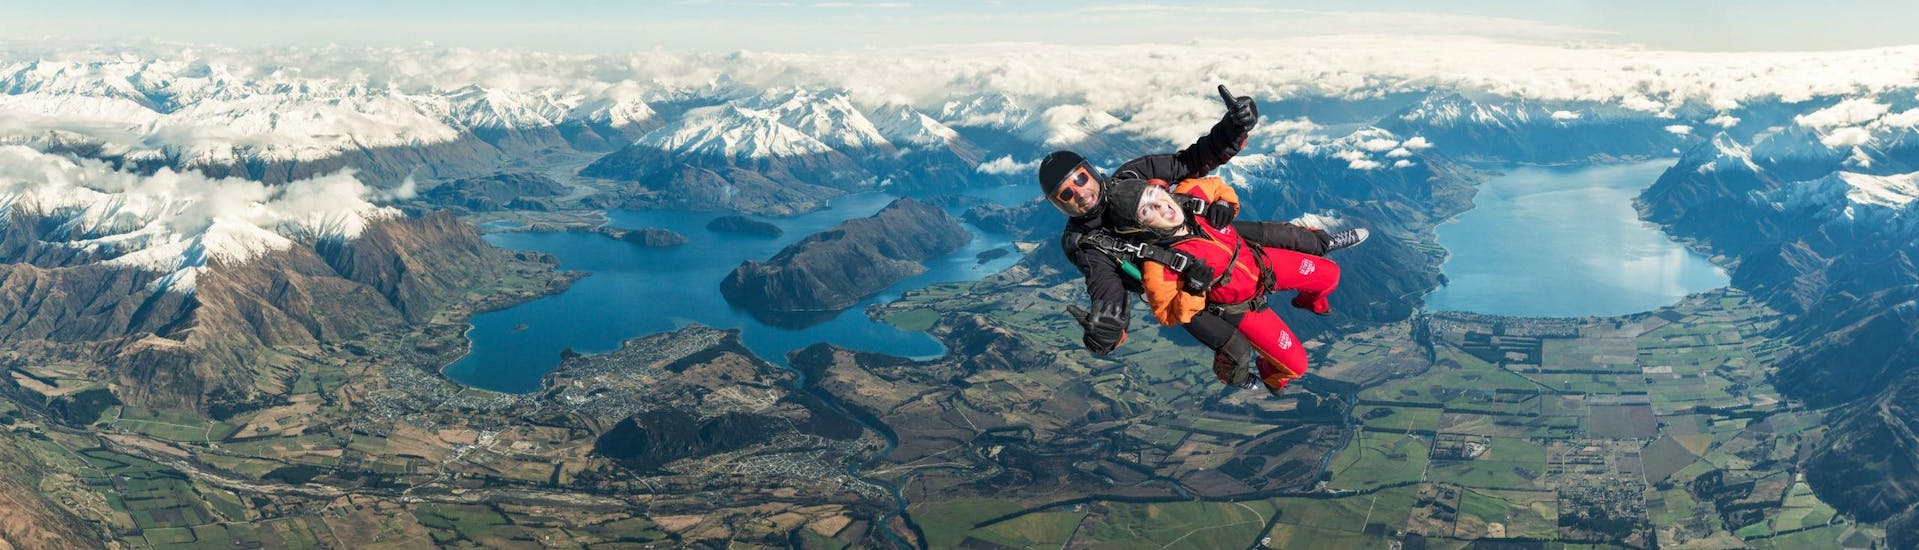 A tandem master from Skydive Wanaka and his passenger are in the middle of their Tandem Skydive in Wanaka - 9,000ft with Queenstown Transfer, above the spectacular mountainscape around Lake Wanaka.